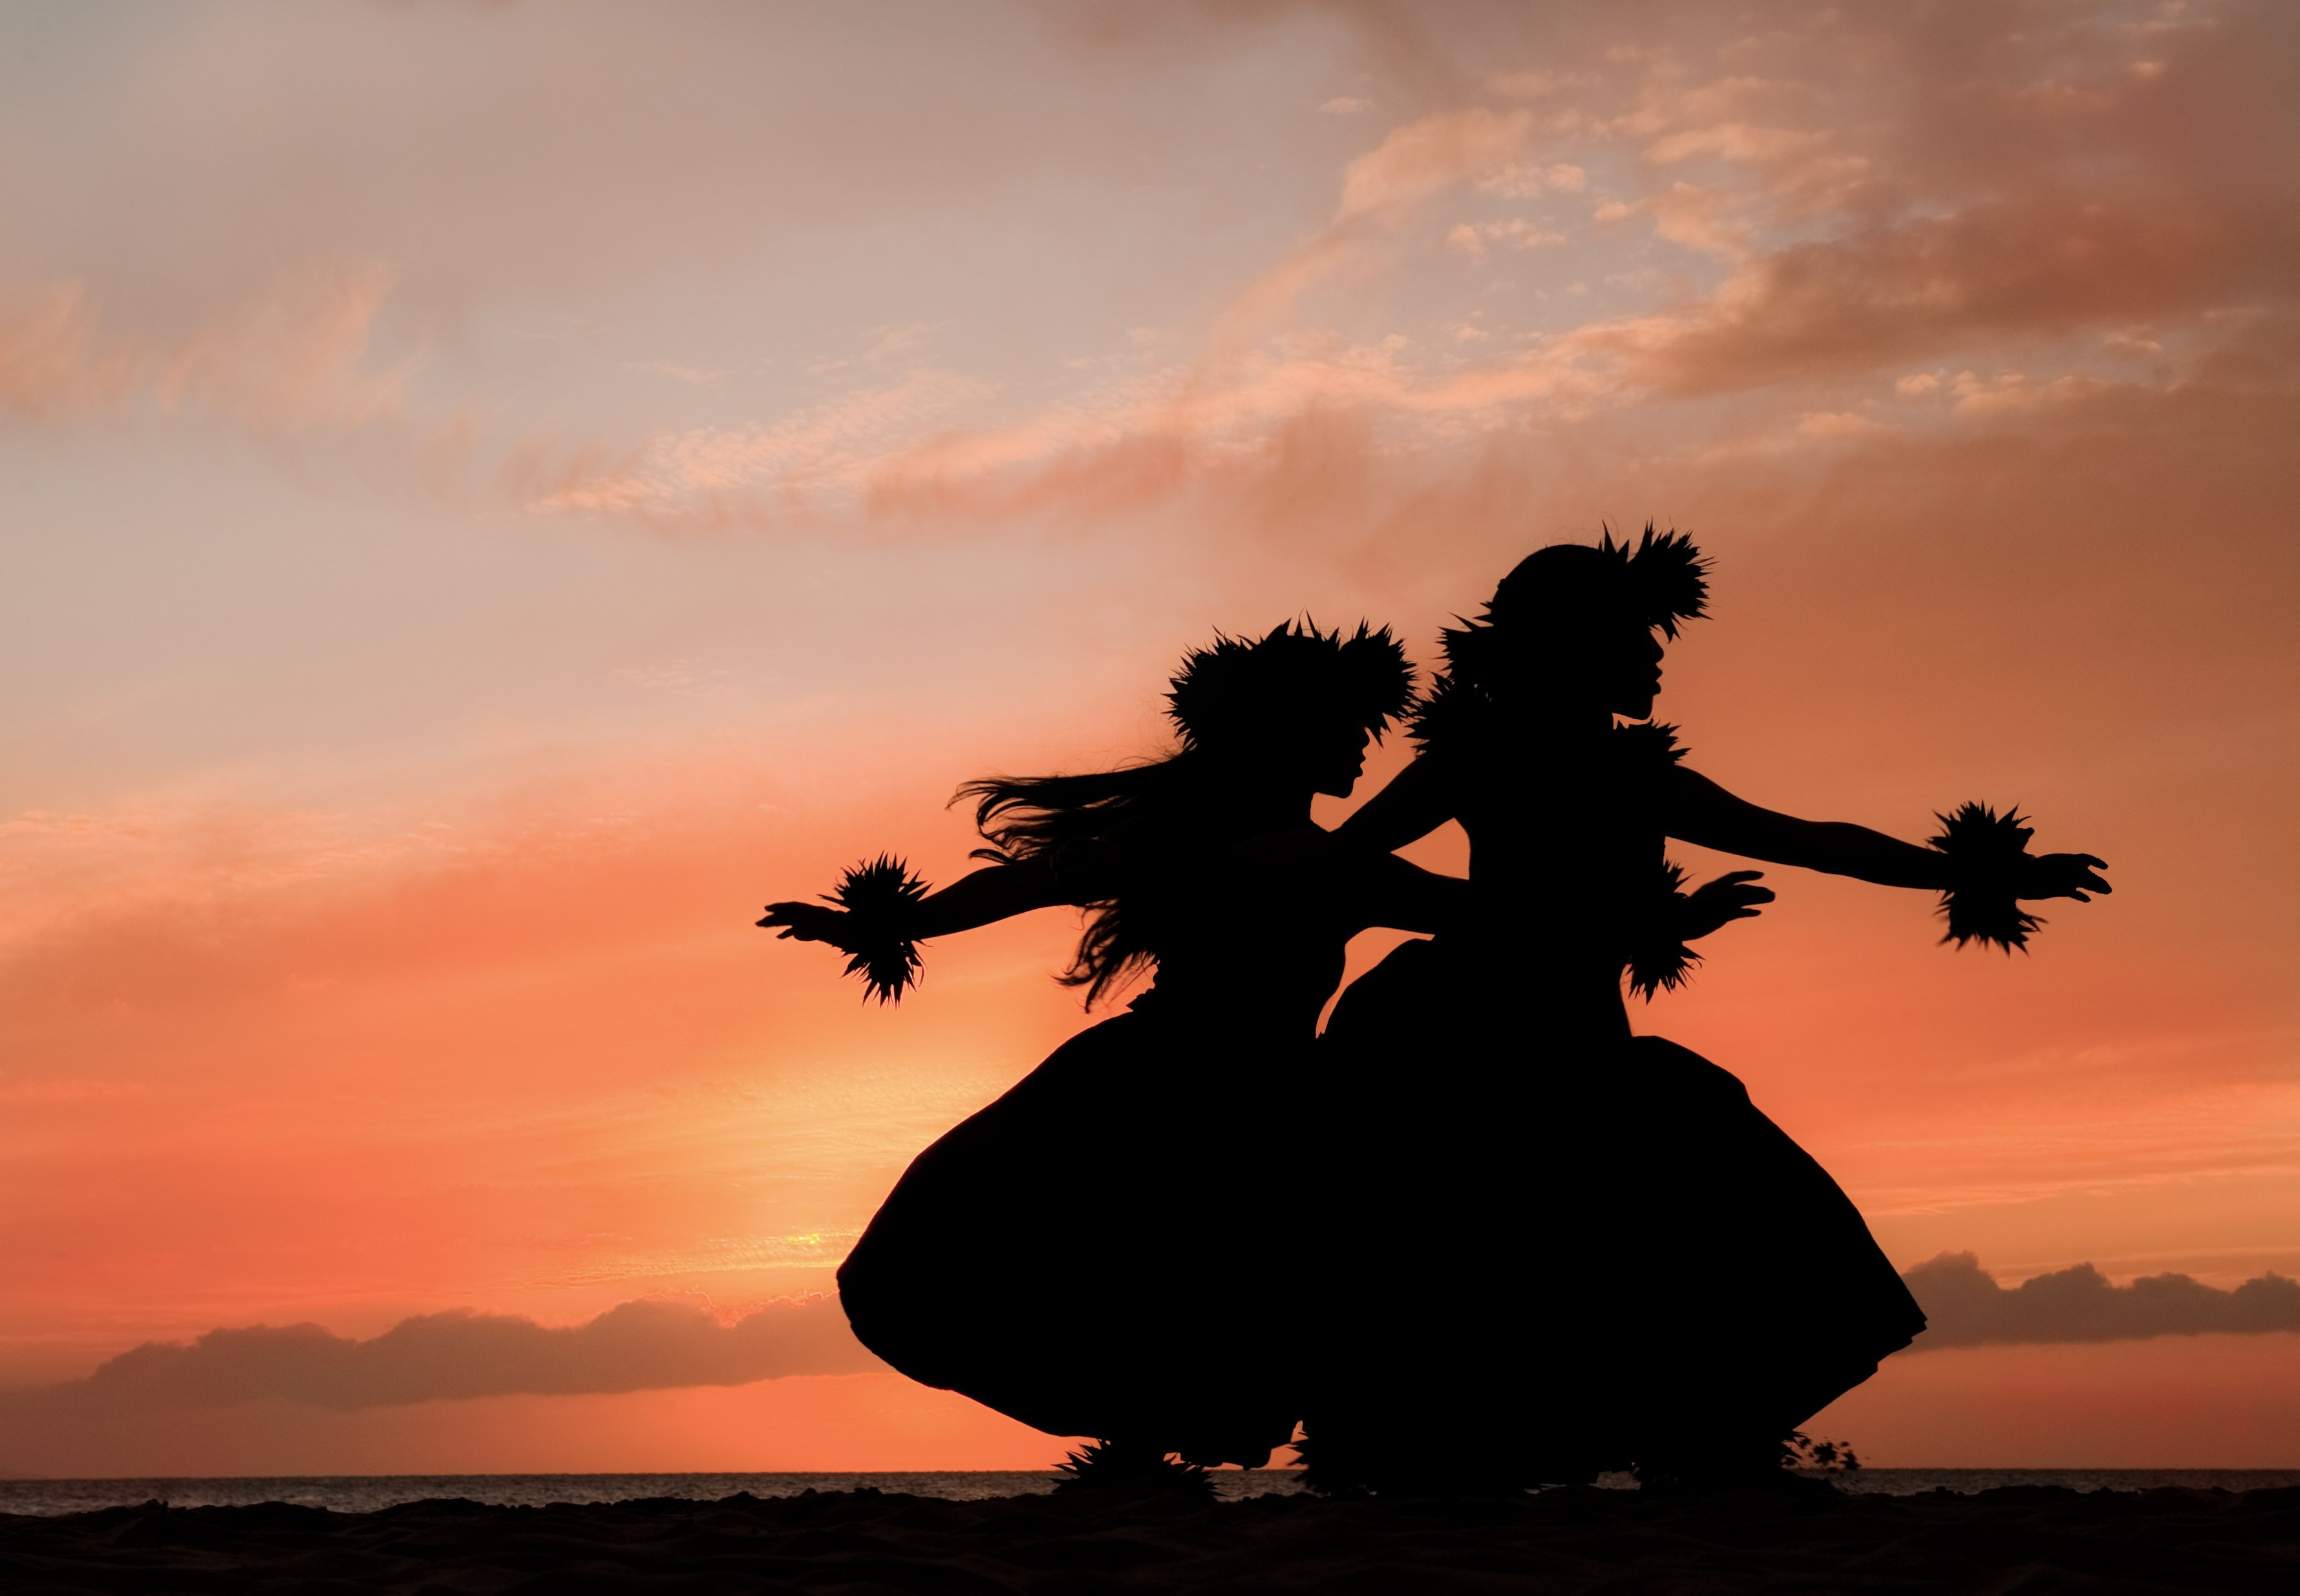 Shadow of two hula dancers against a glowing tropical sunset in Maui.